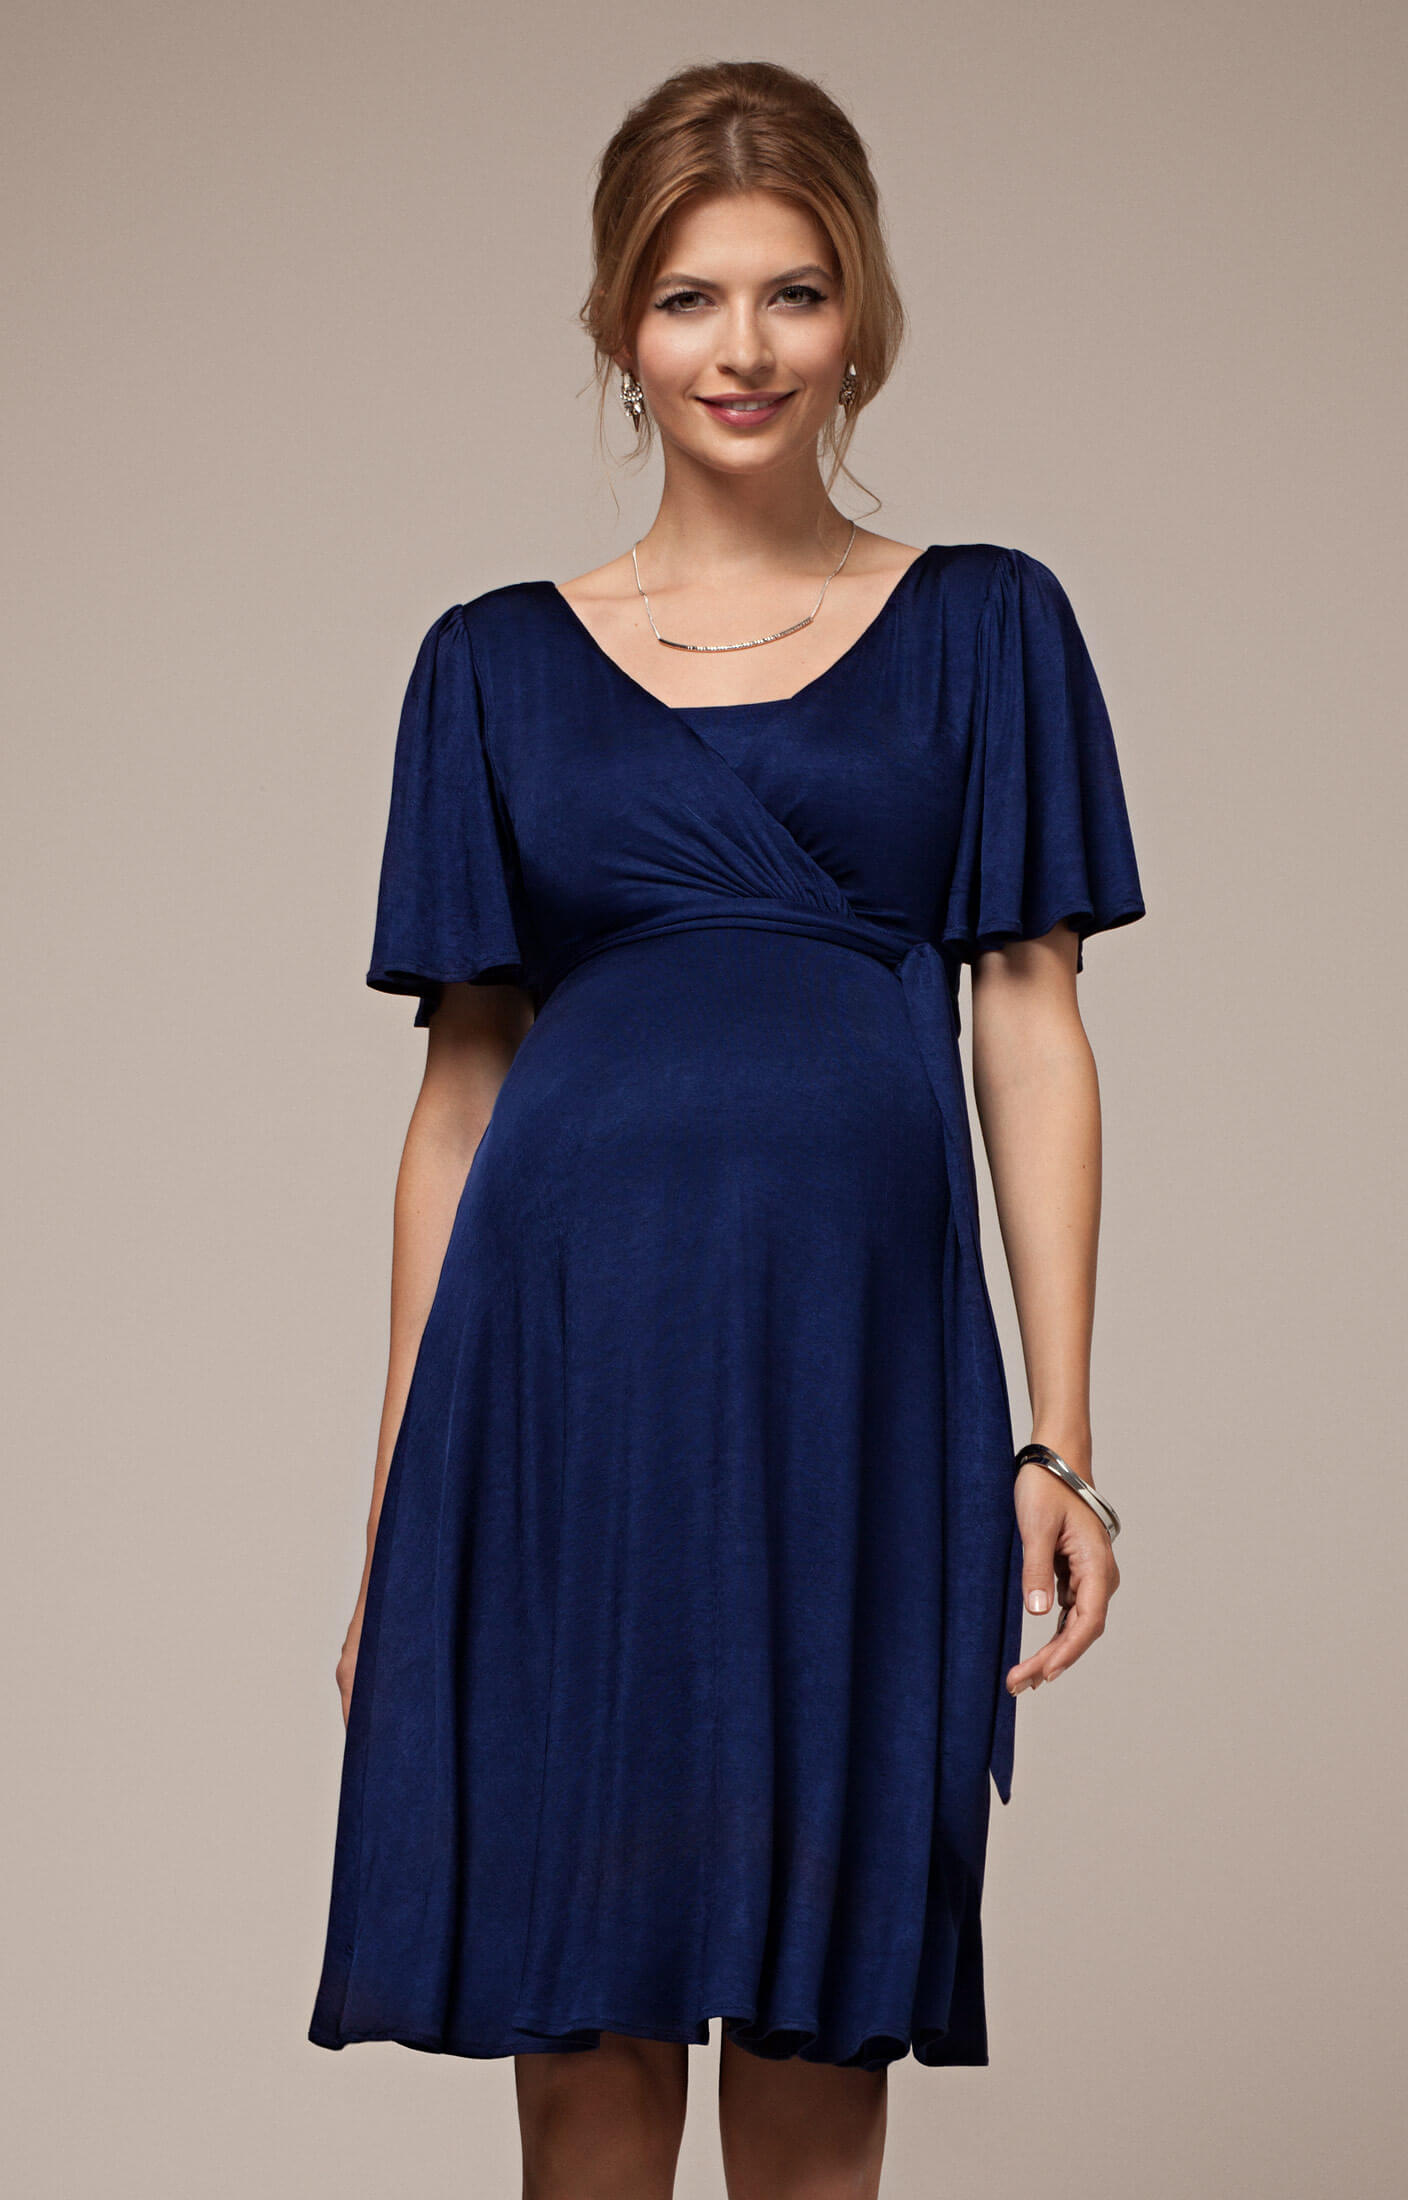 Nursing Dresses Built for Ease, Convenience. Looking great is the first step toward feeling great, and the eclectic collection of breastfeeding dresses available at Old Navy will make the postpartum experience more stylish than you ever imagined.